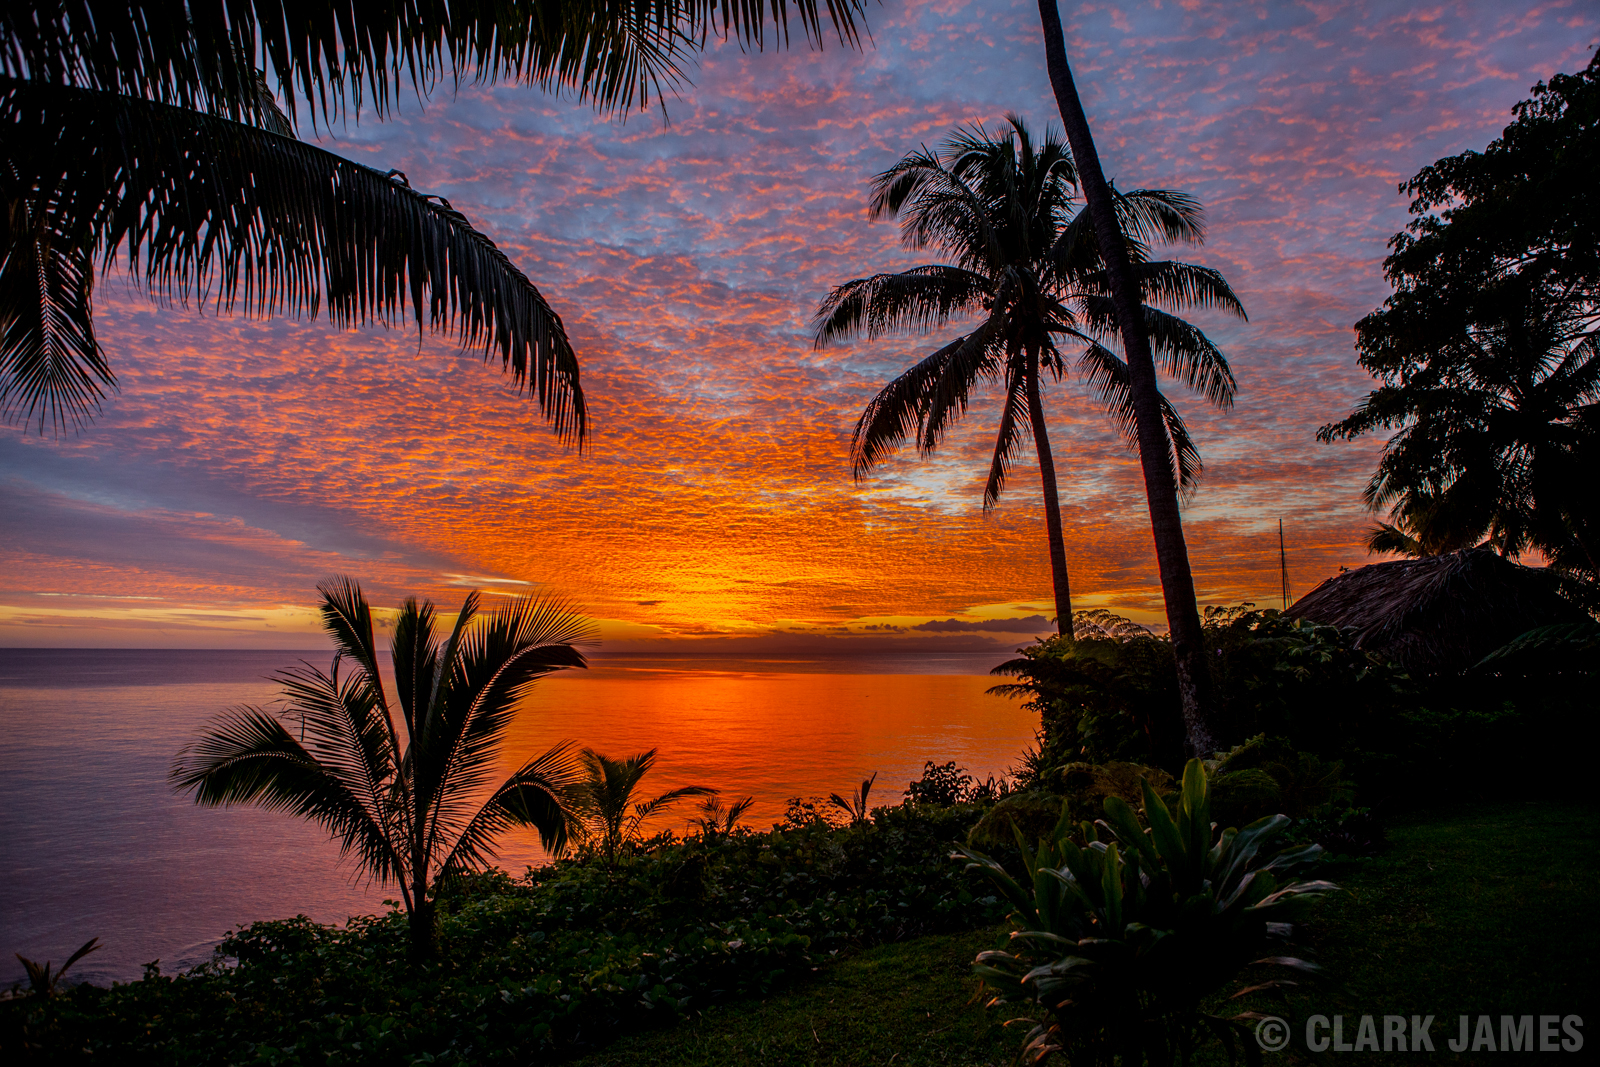 SUNSET AT PARADISE TAVEUNI, FIJI